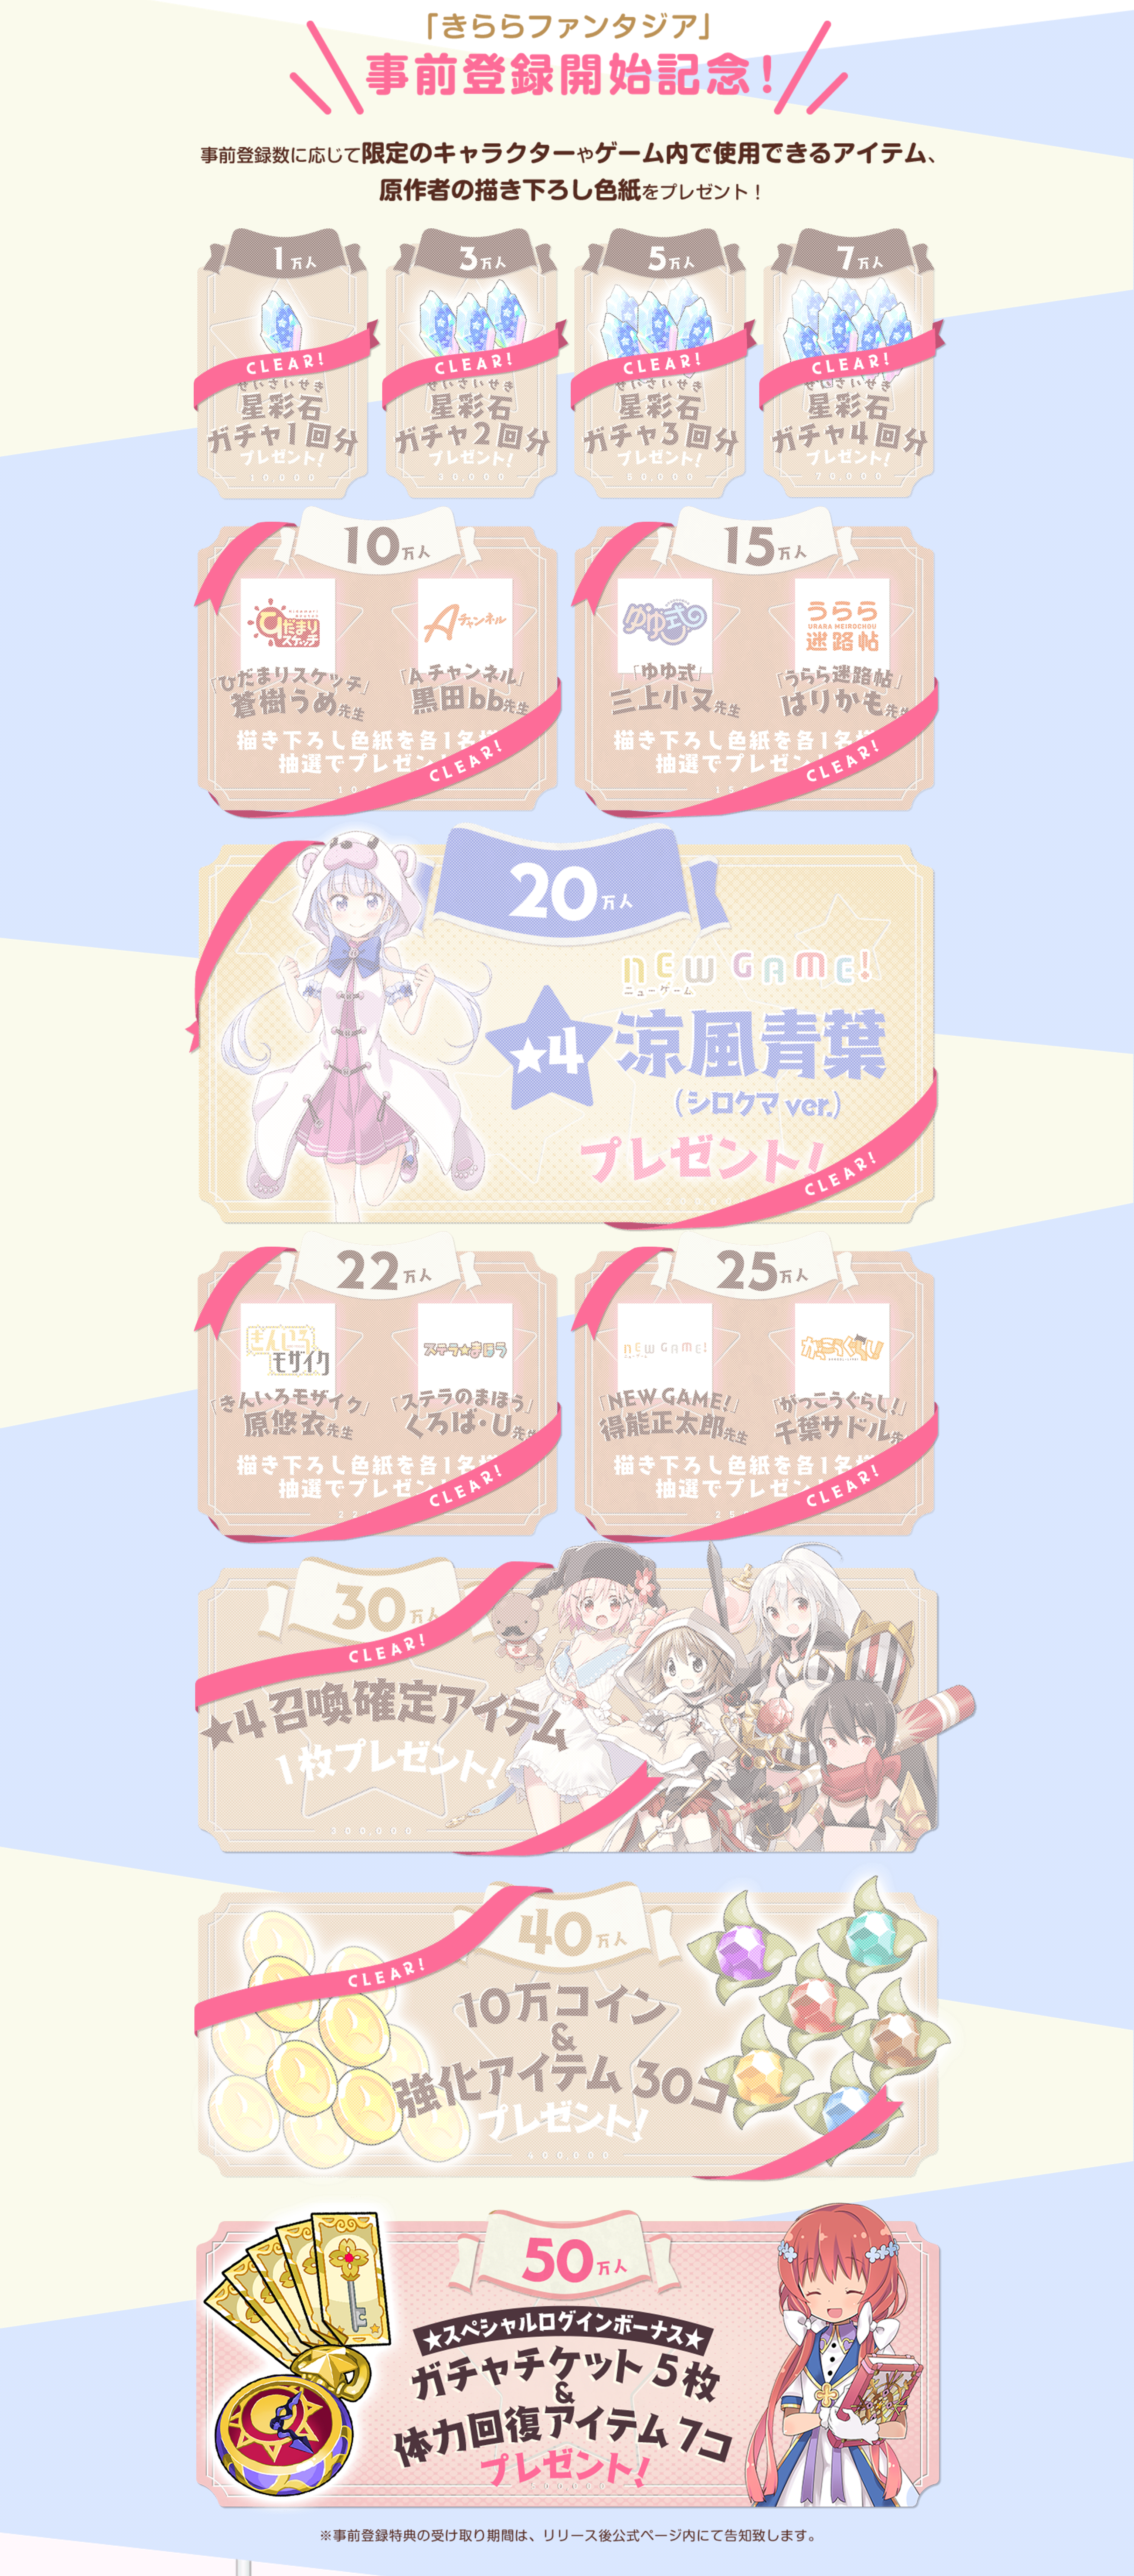 20170915_TOP50万人追加バナー.png